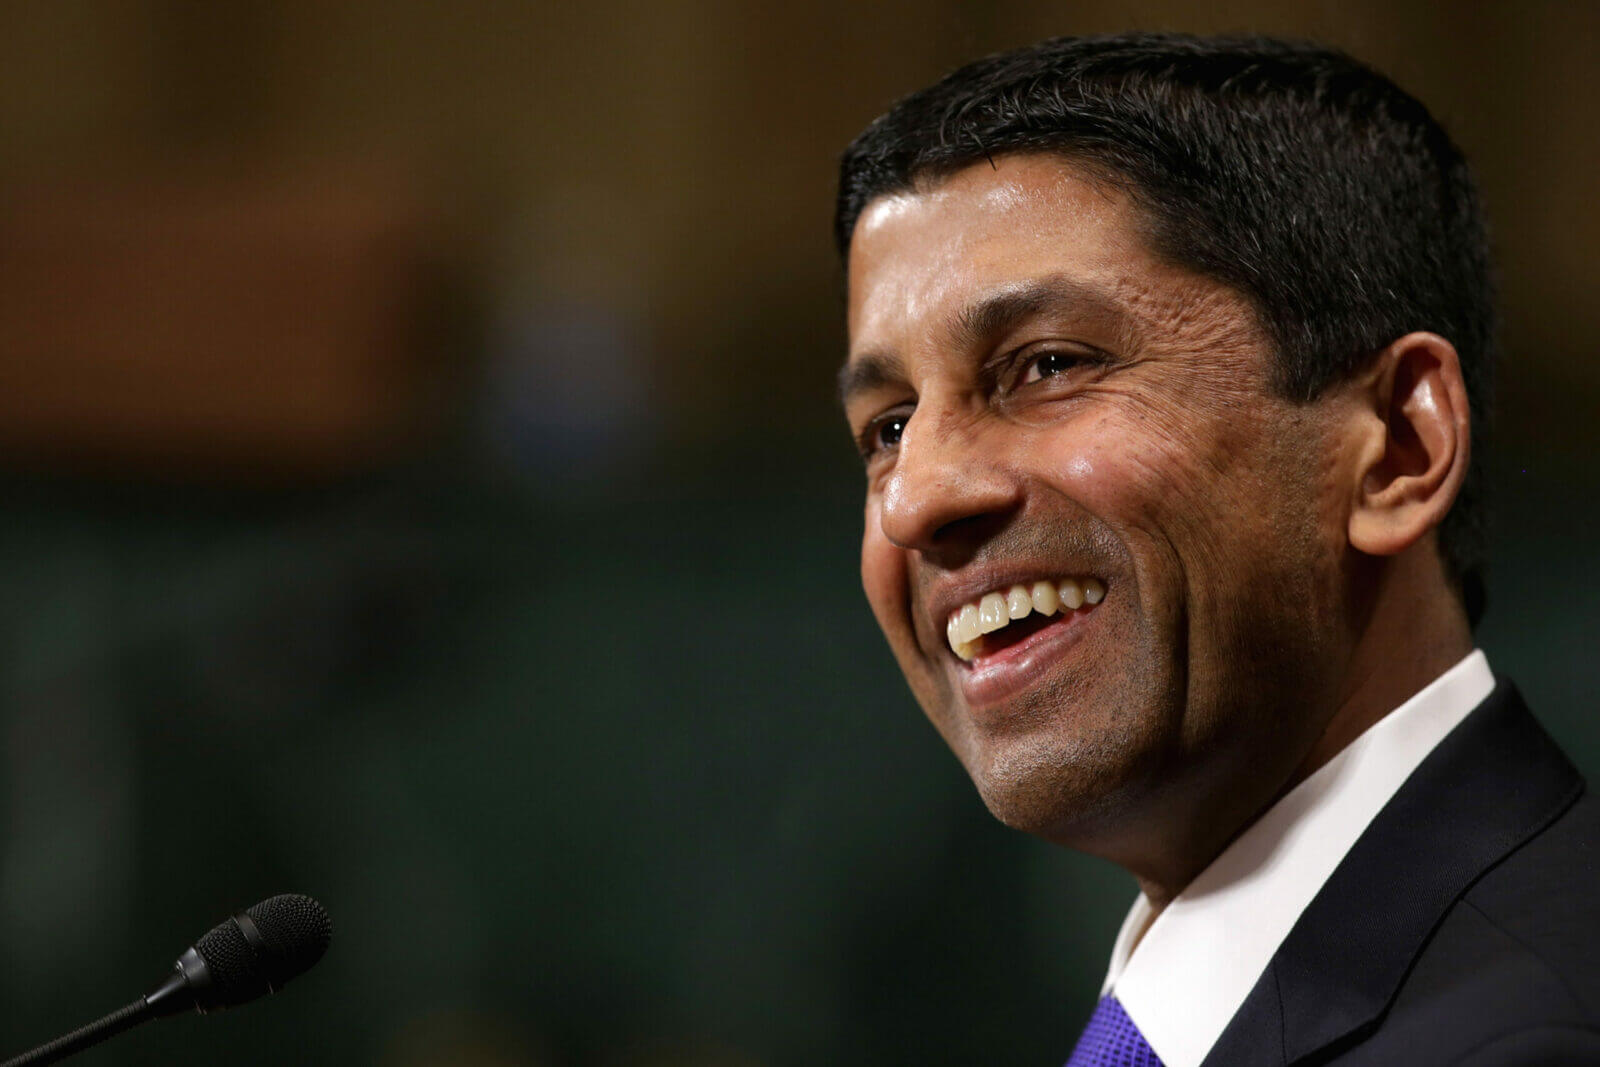 Senate Holds Confirmation Hearing For Srikanth Srinivasan For U.S. Circuit Judge